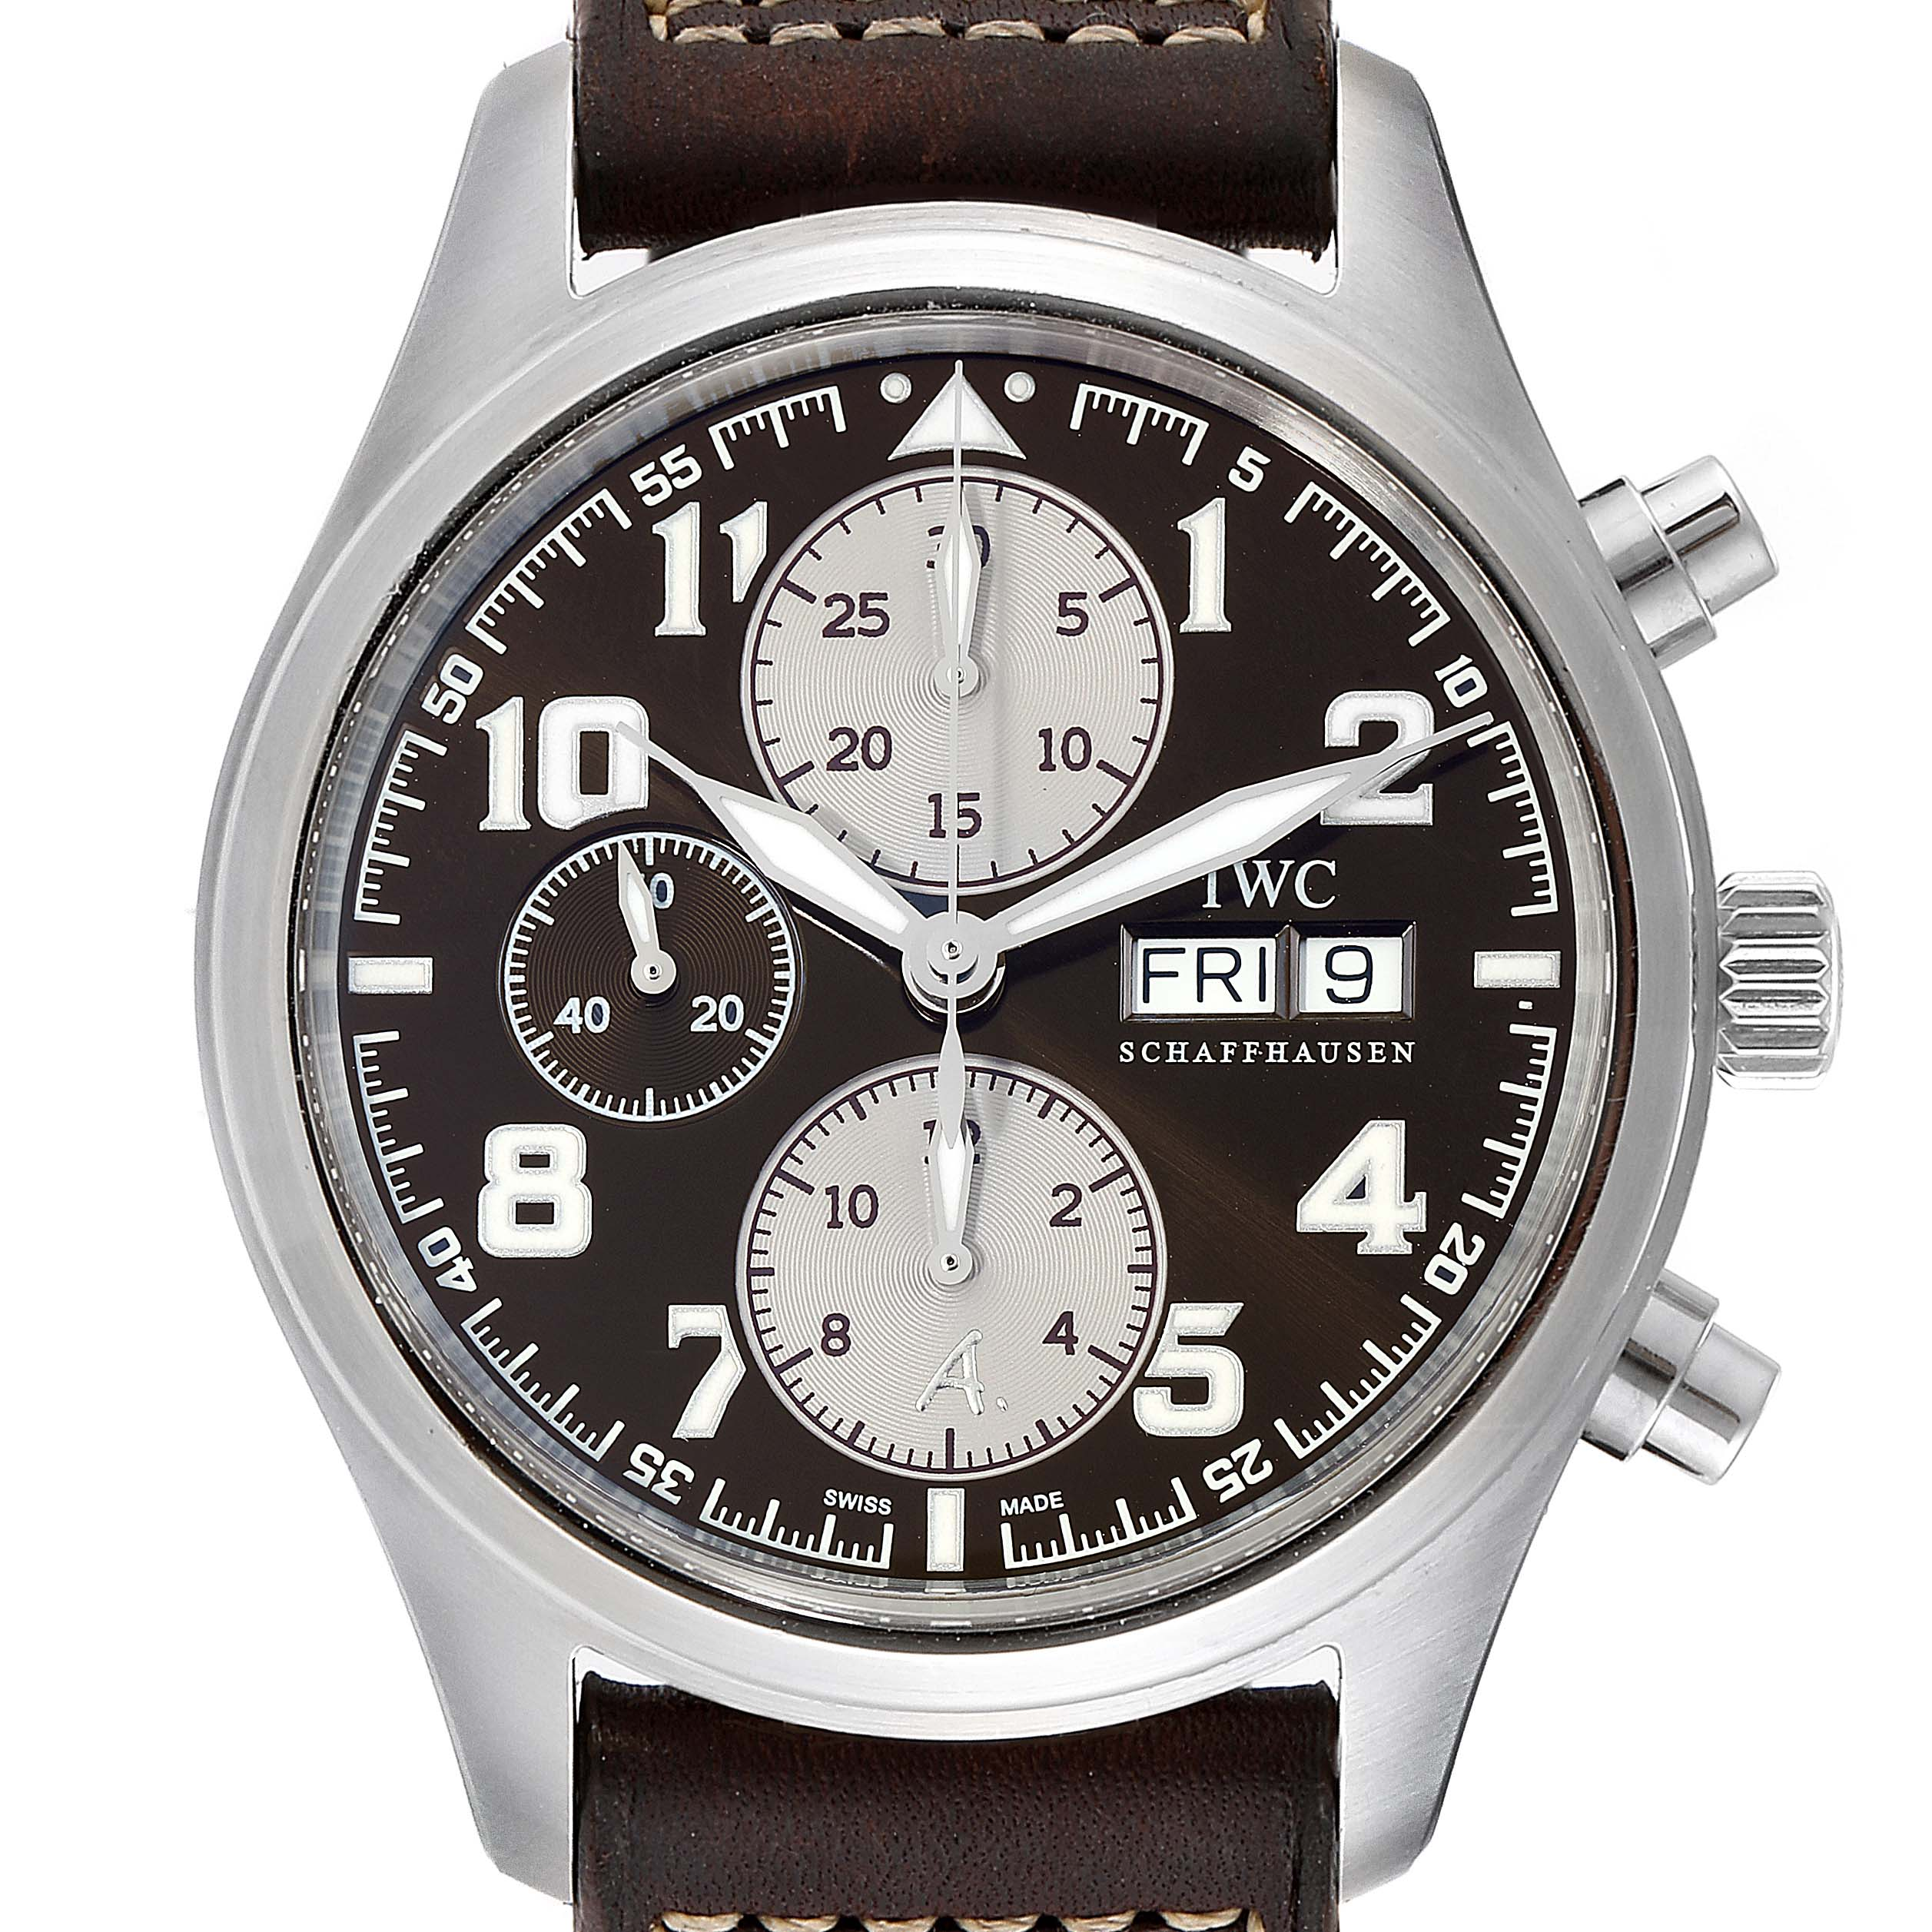 Photo of IWC Spitfire Pilot Saint Exupery Limited Edition Mens Watch IW371709